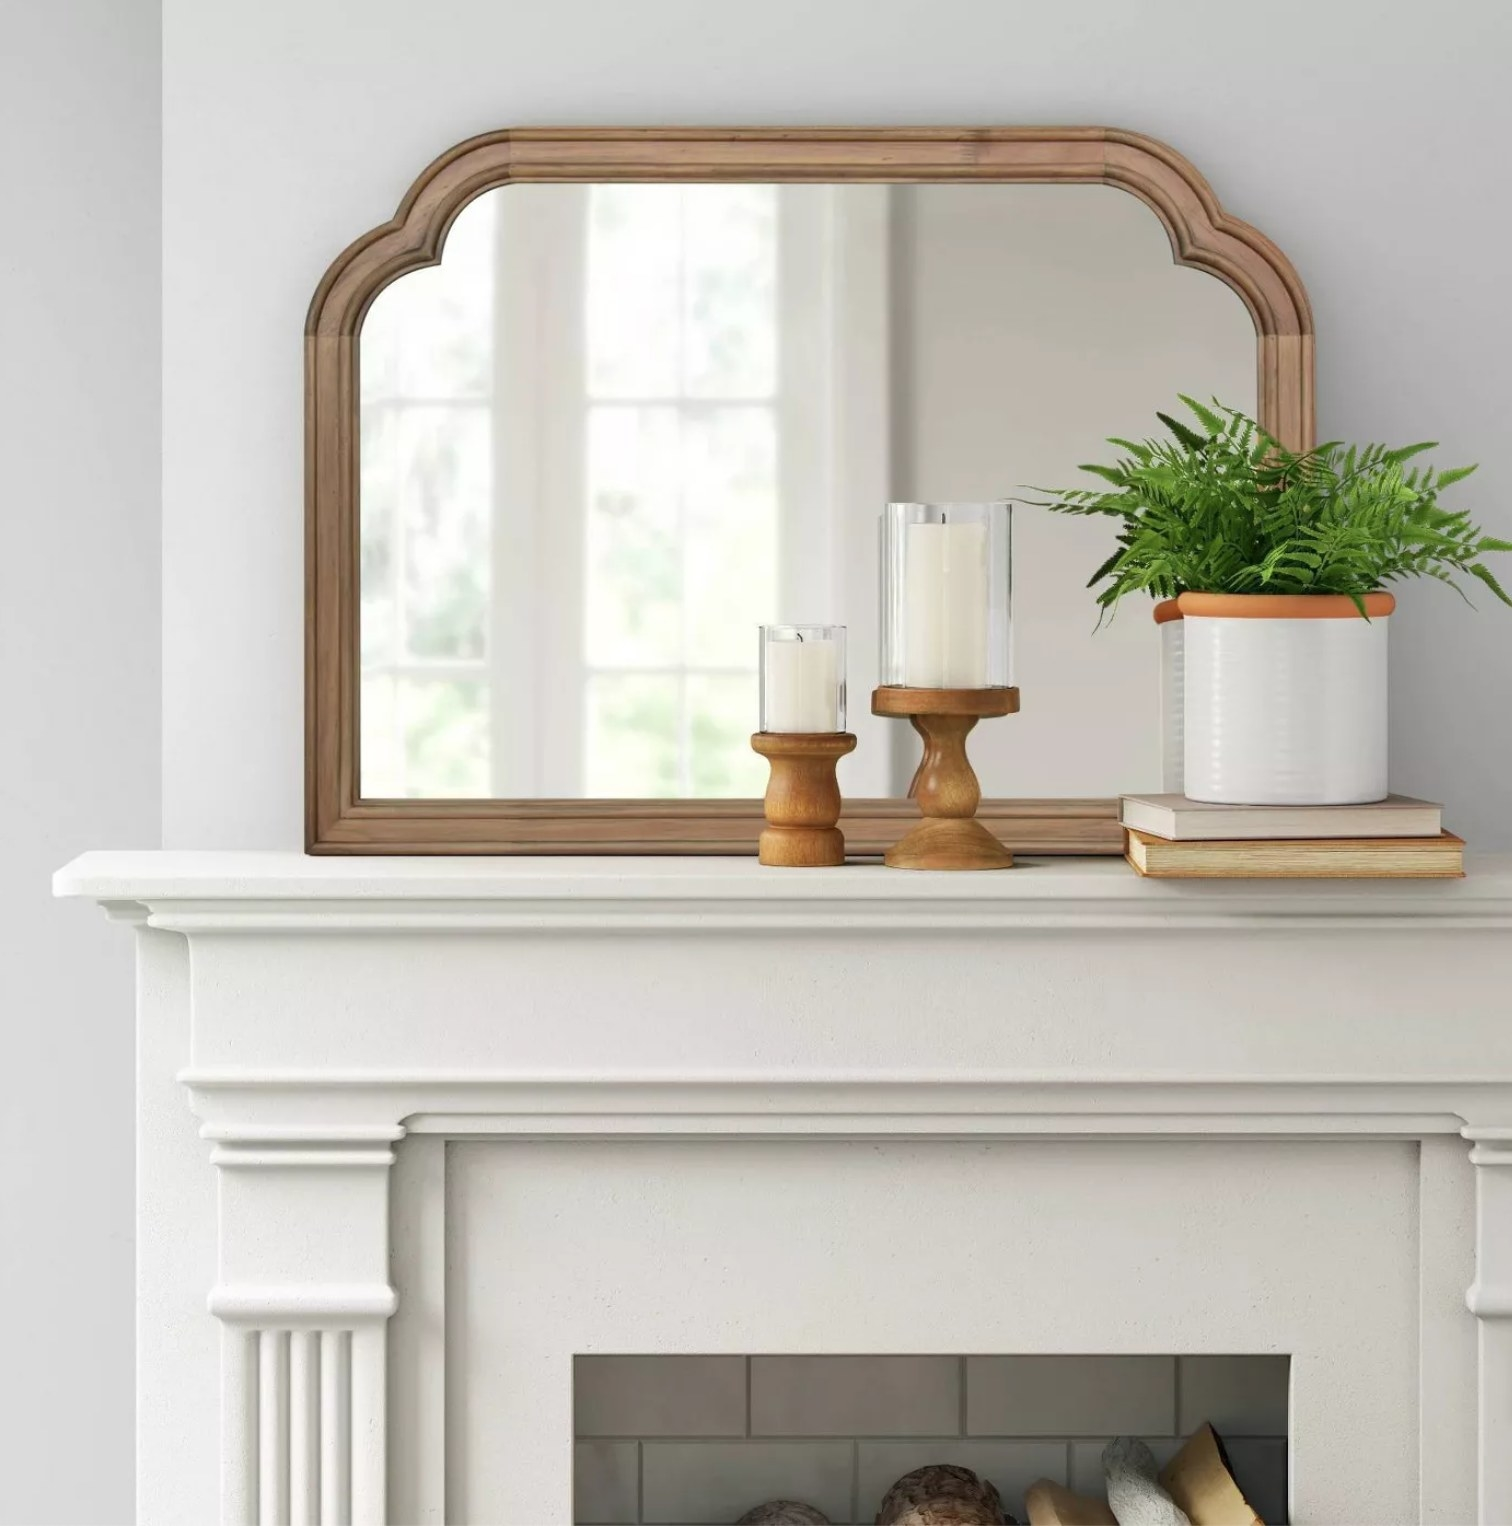 the mirror on a mantle with candles and a plant placed in front of it